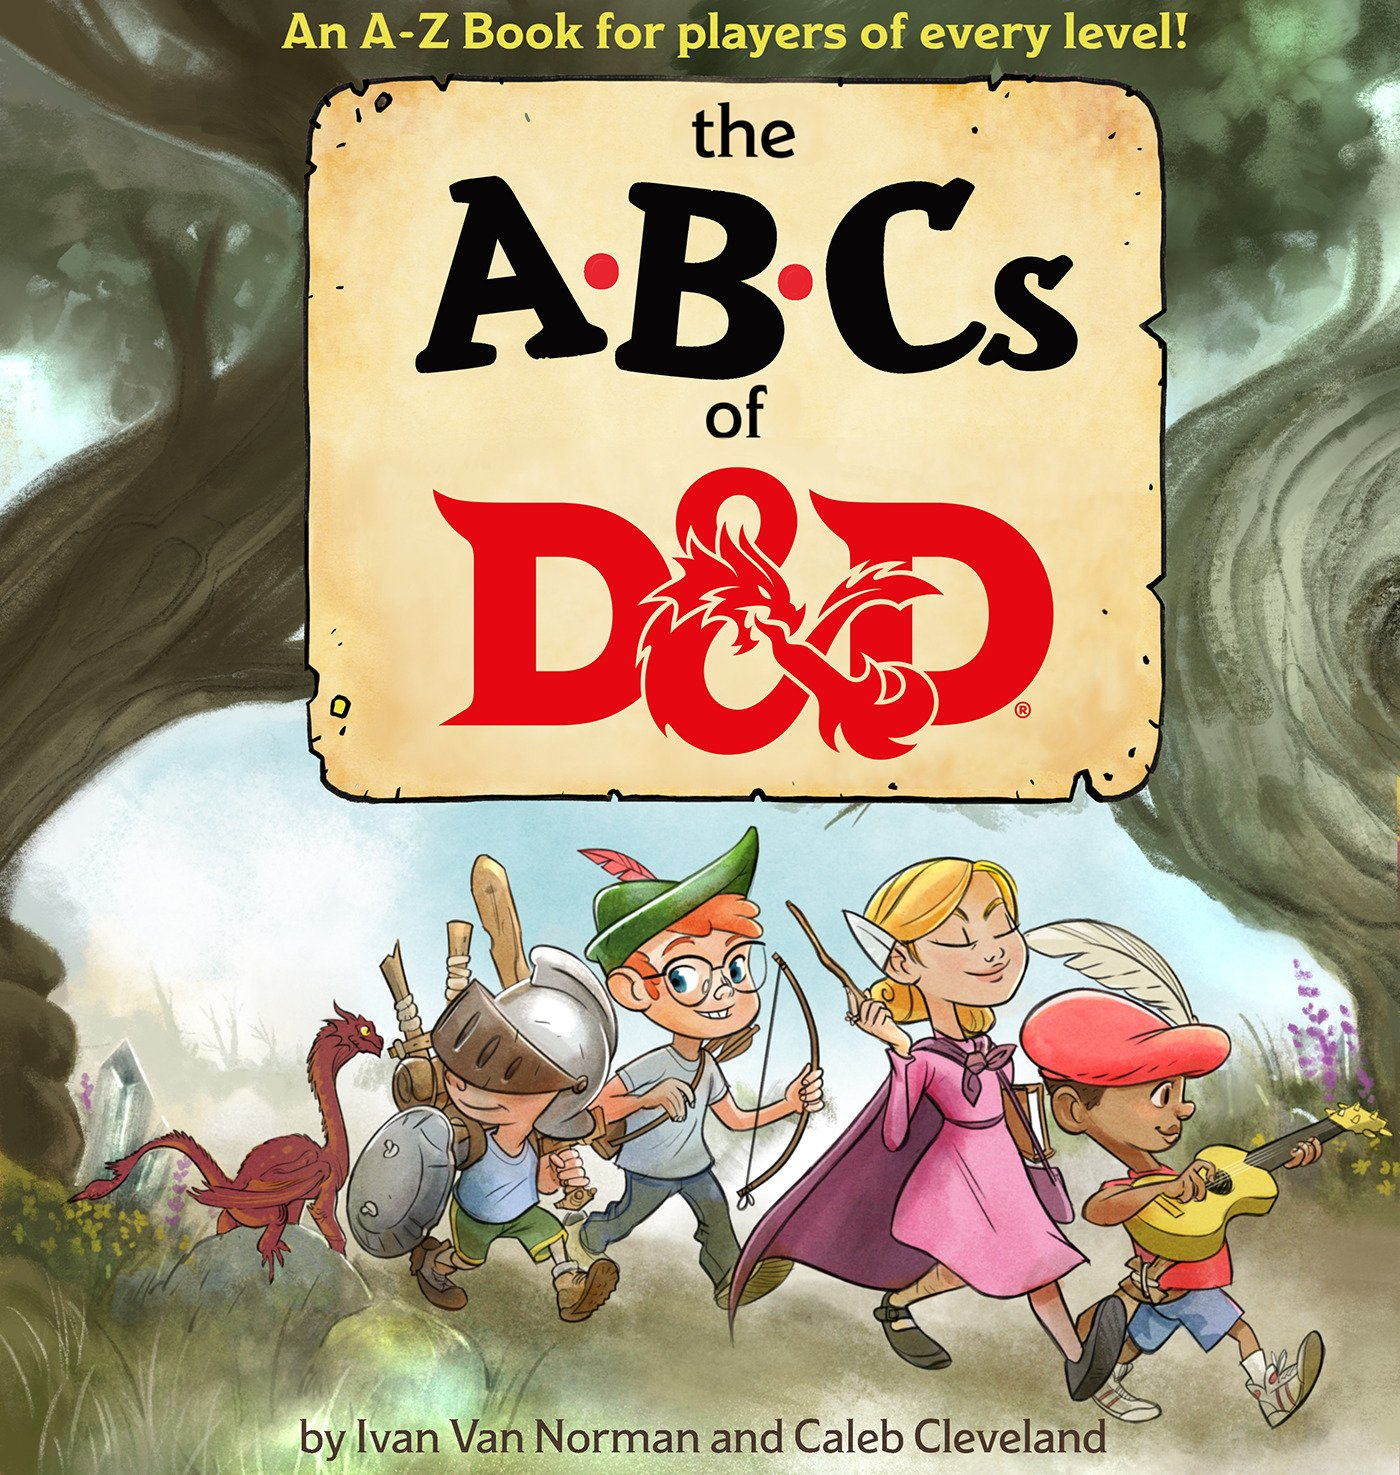 The Best ABC Picture Books - The ABCs of D&D.jpg